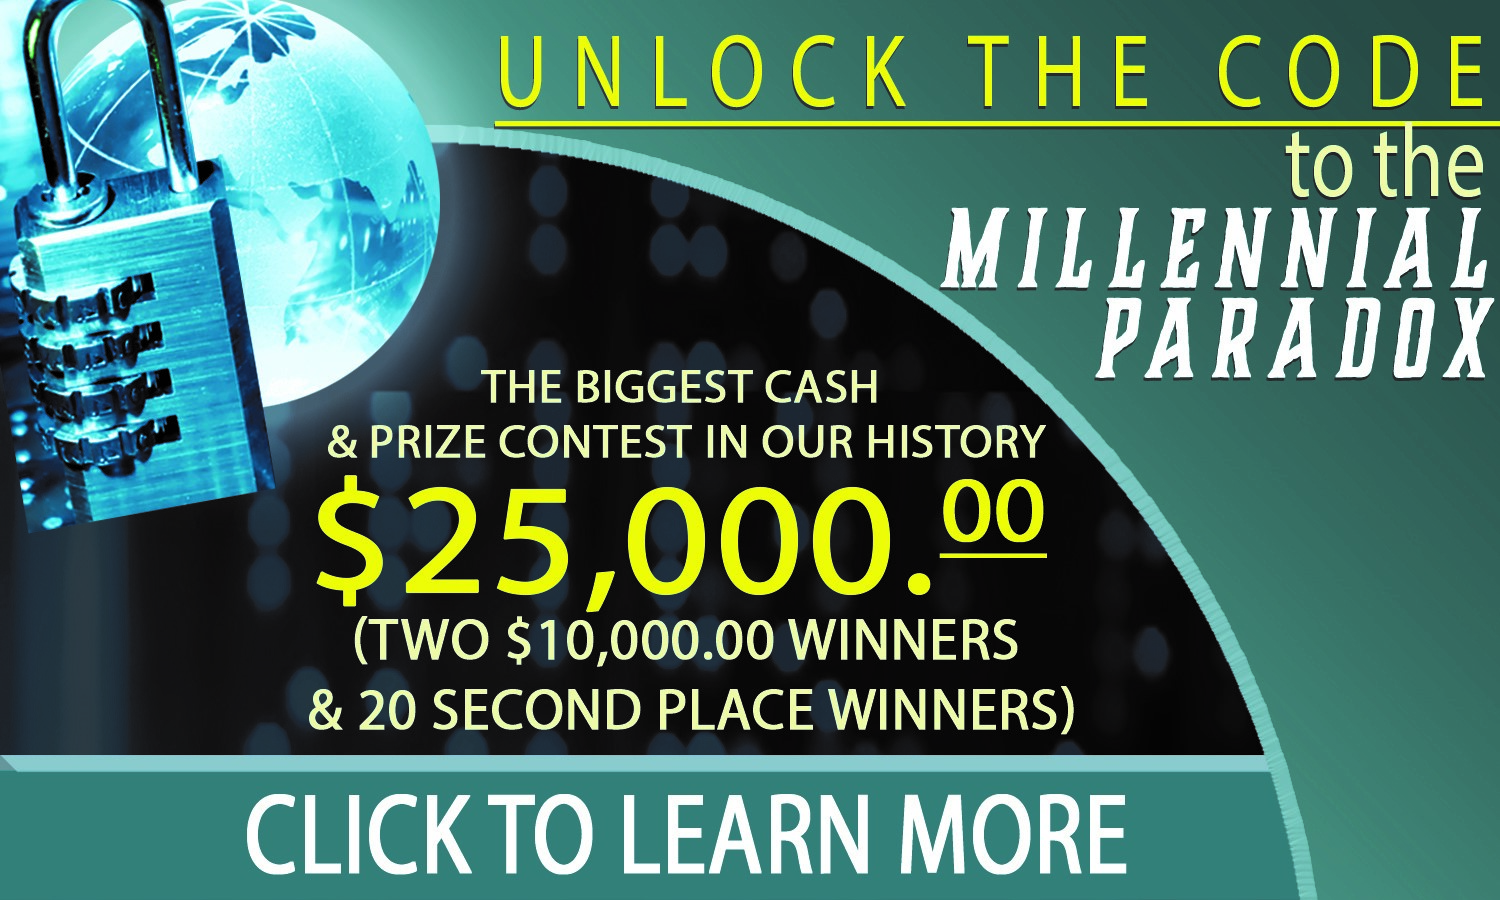 THE BIGGEST CASH GIVEAWAY IN OUR HISTORY! OVER $25,000.00 TO 22 WINNERS!